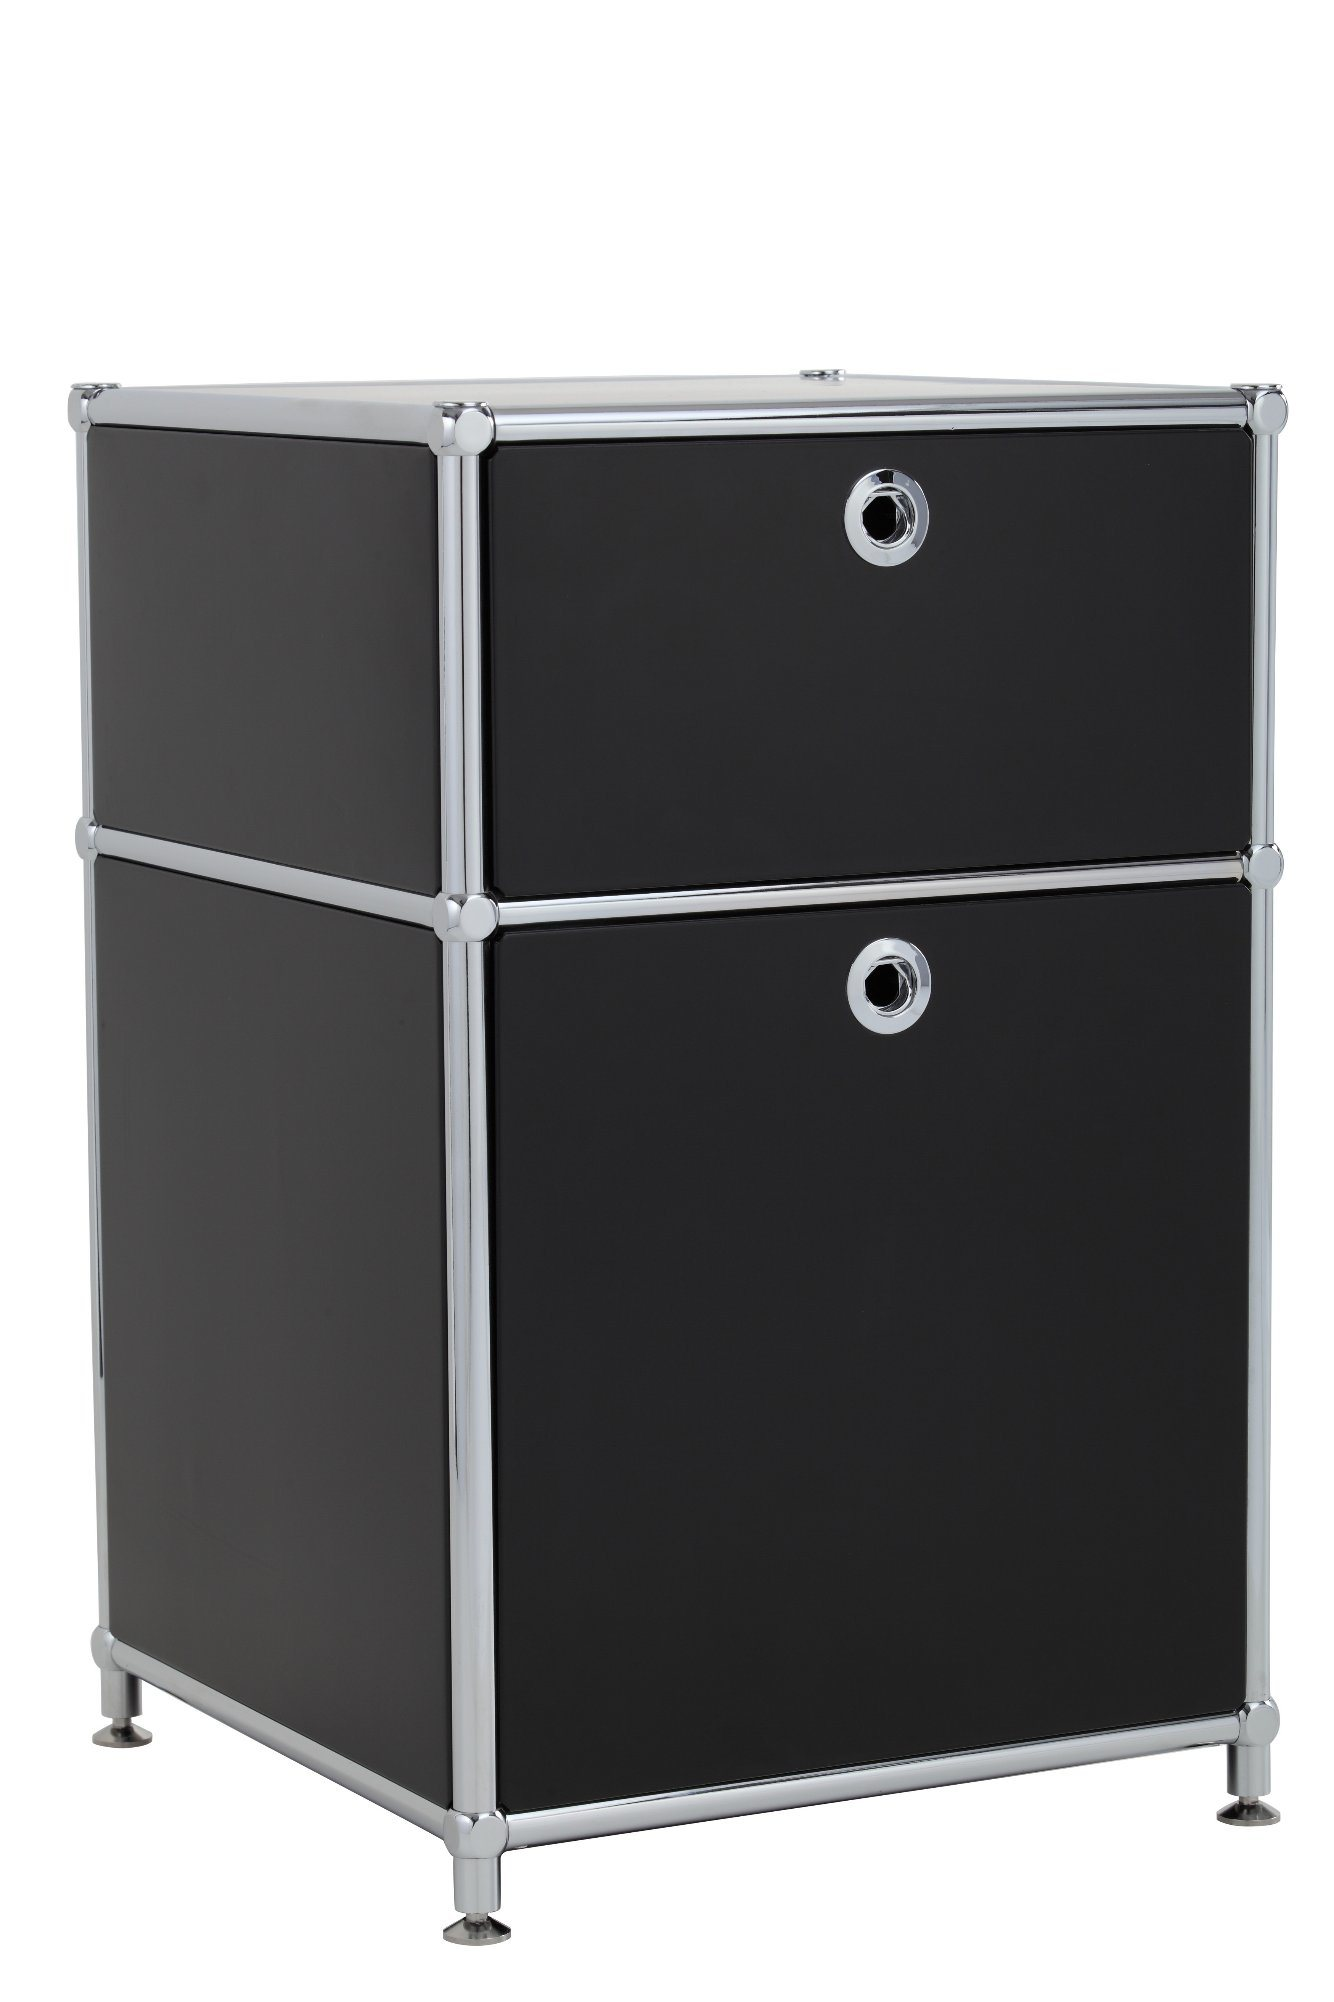 Transcube Stainless Steel Modern Two Tiers Modular Cabinet